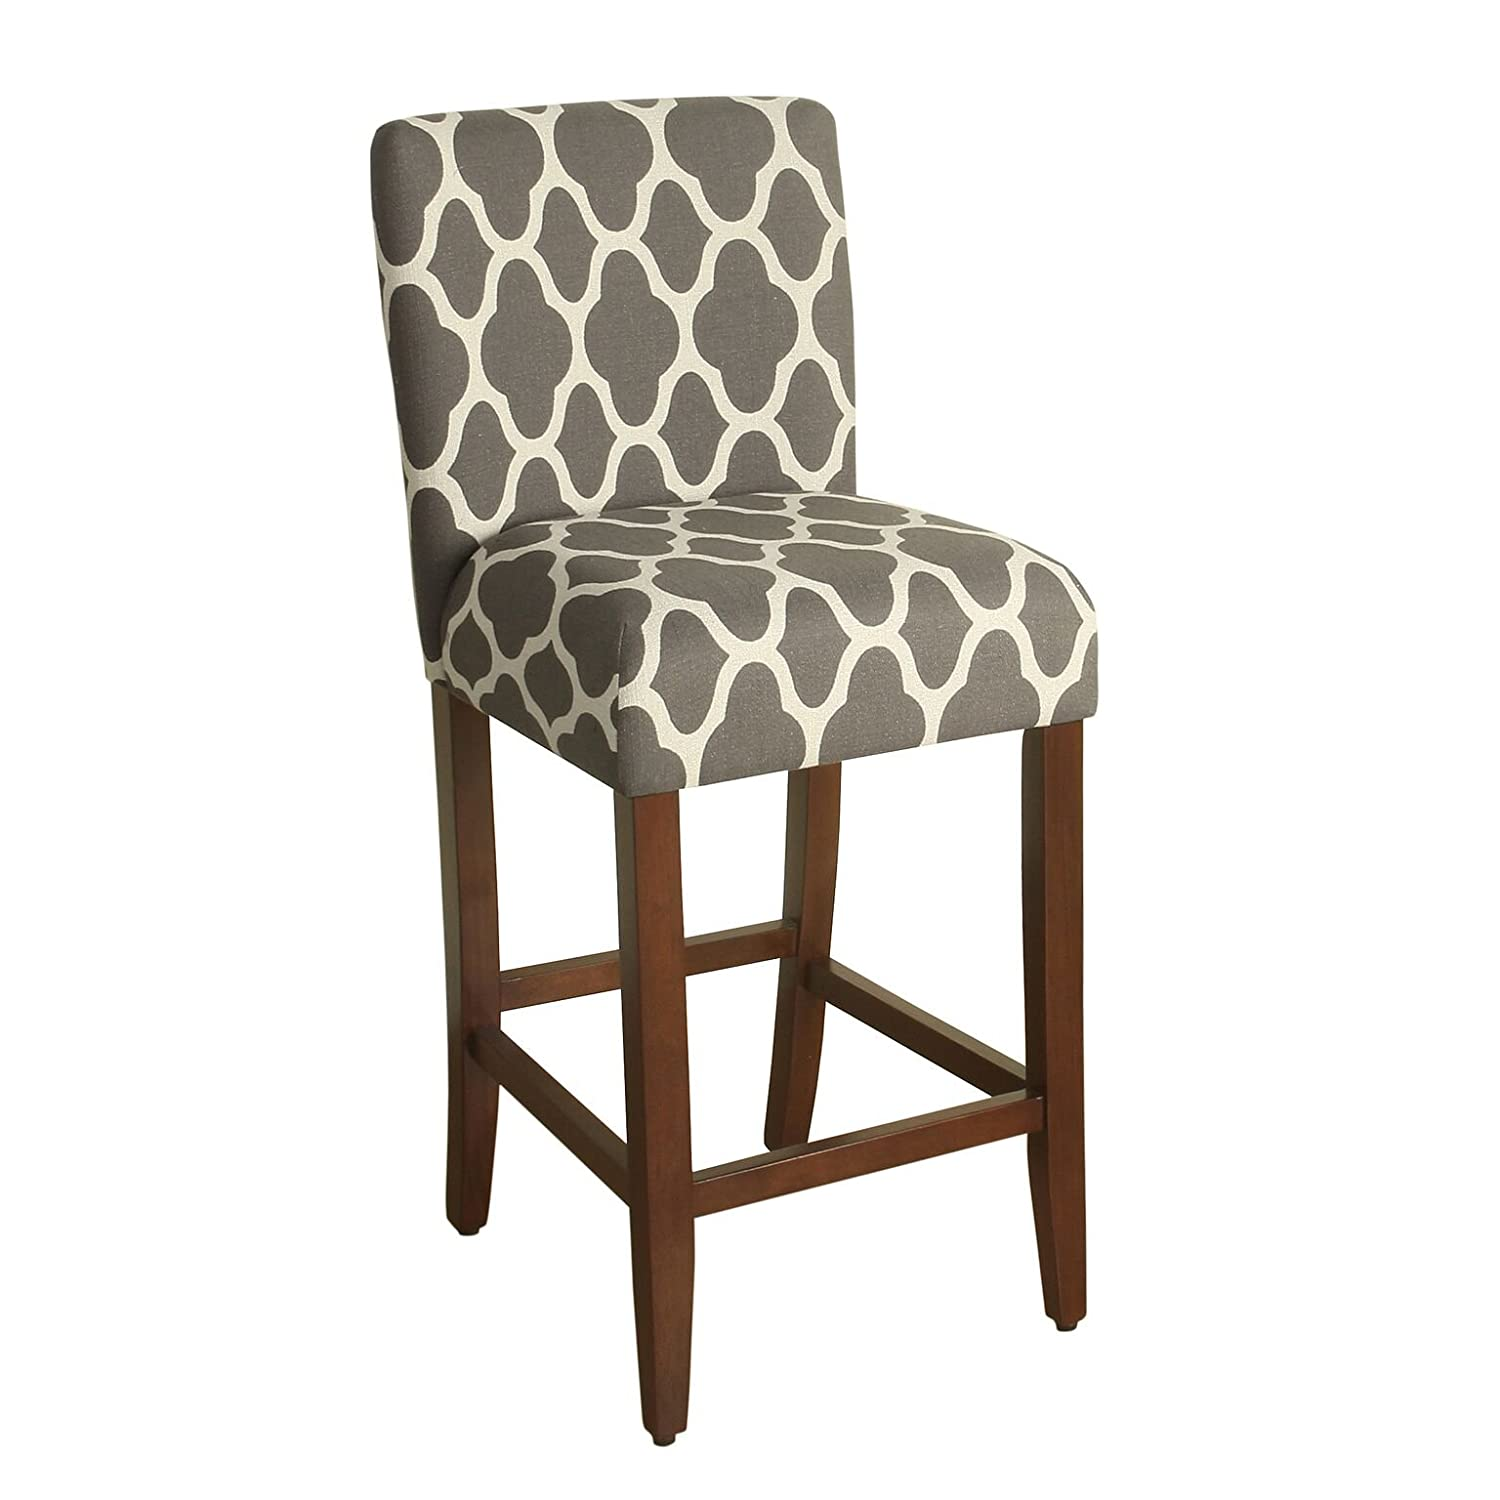 HomePop Upholstered Counter Height Barstool, 29-inch, Grey and Cream Geometric